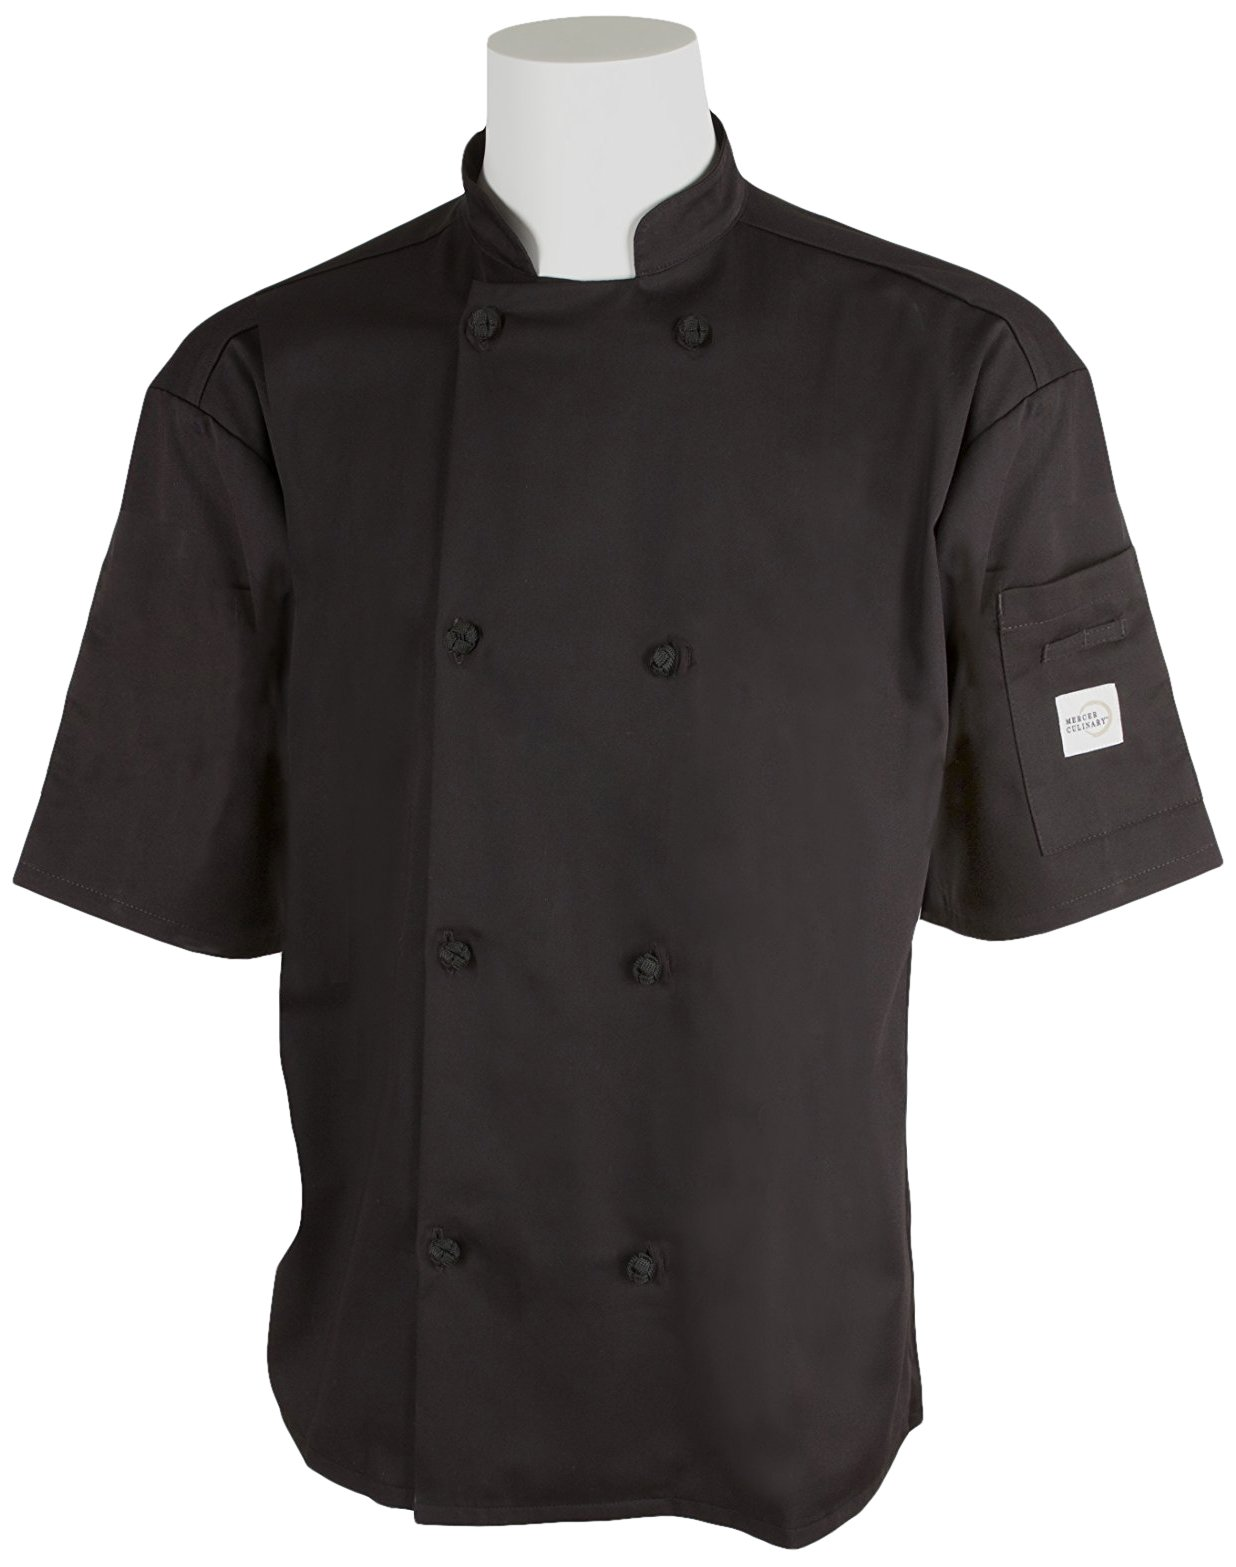 Mercer Culinary M61022BK3X Genesis Men's Short Sleeve Chef Jacket with Cloth Knot Buttons, 3X-Large, Black